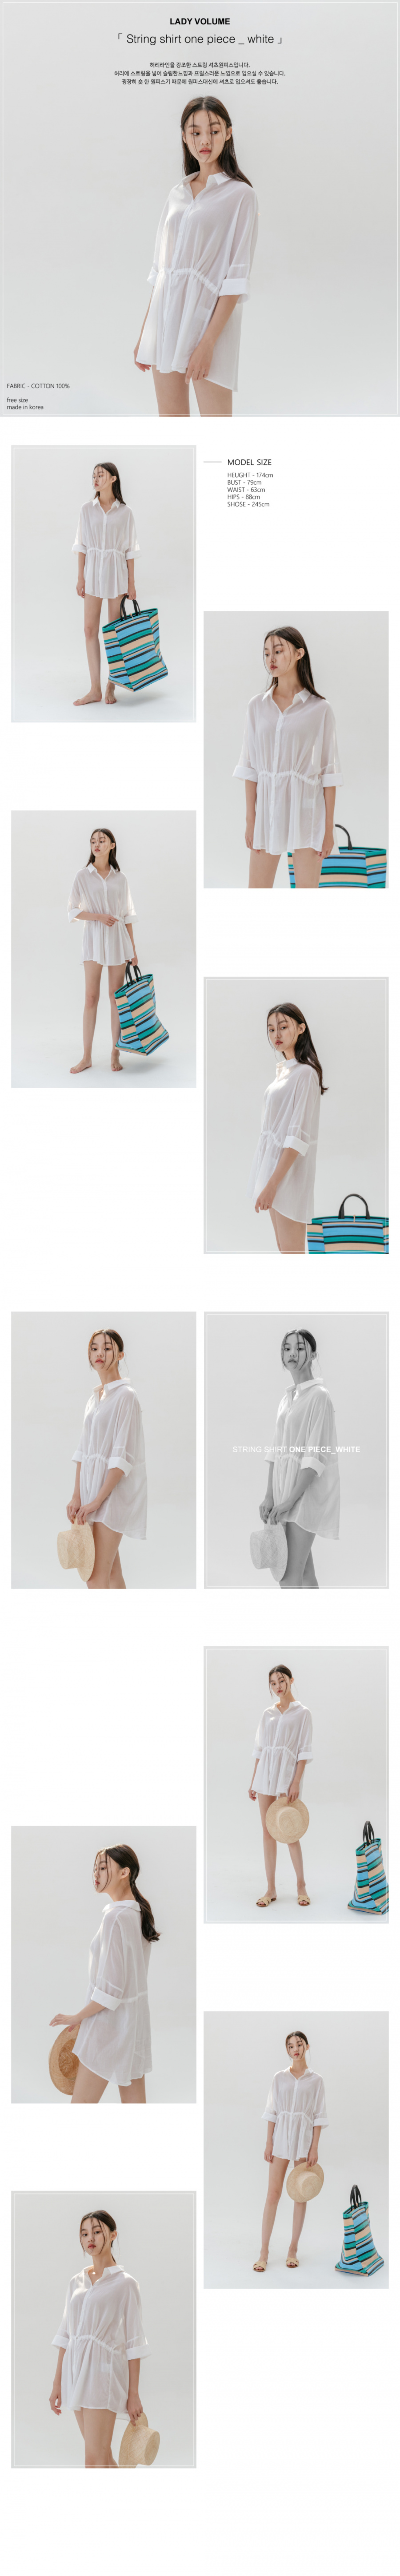 레이디 볼륨(LADY VOLUME) string shirt one piece_white